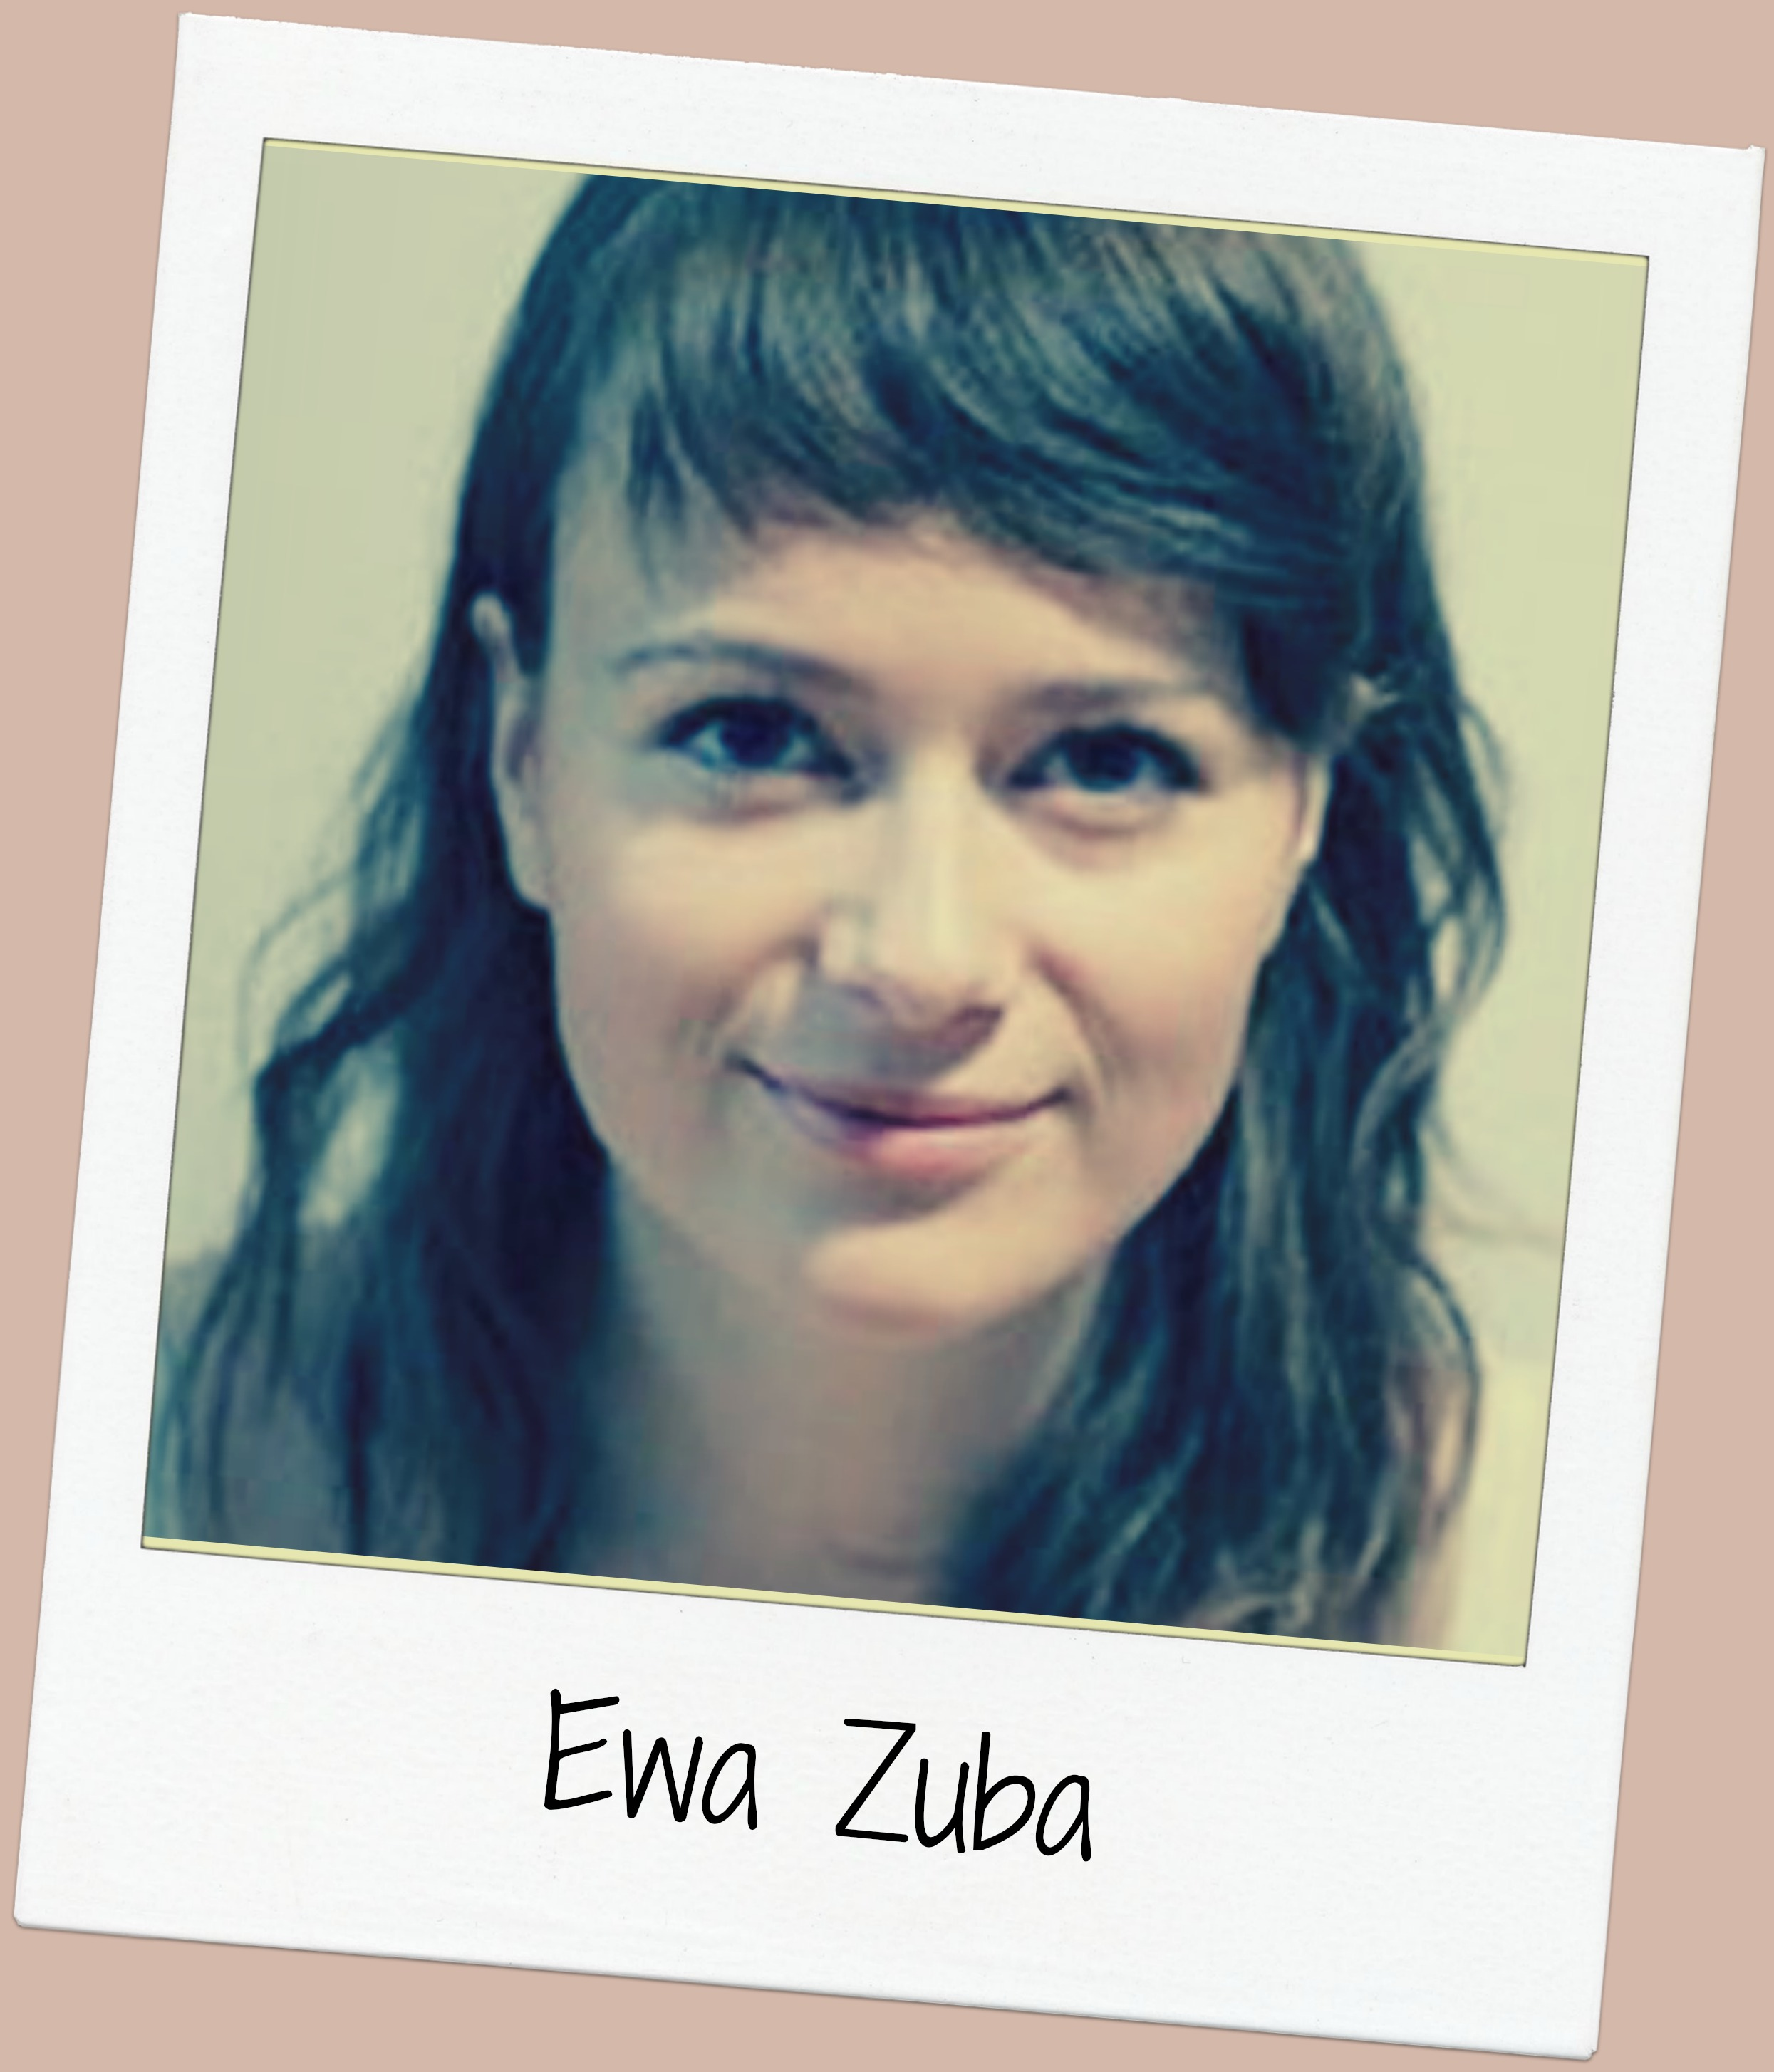 Ewa works as Network Consulting Engineer. She loves math, networking and working with people. In her free time she travels with a photo camera, and enjoys a good game of volleyball!